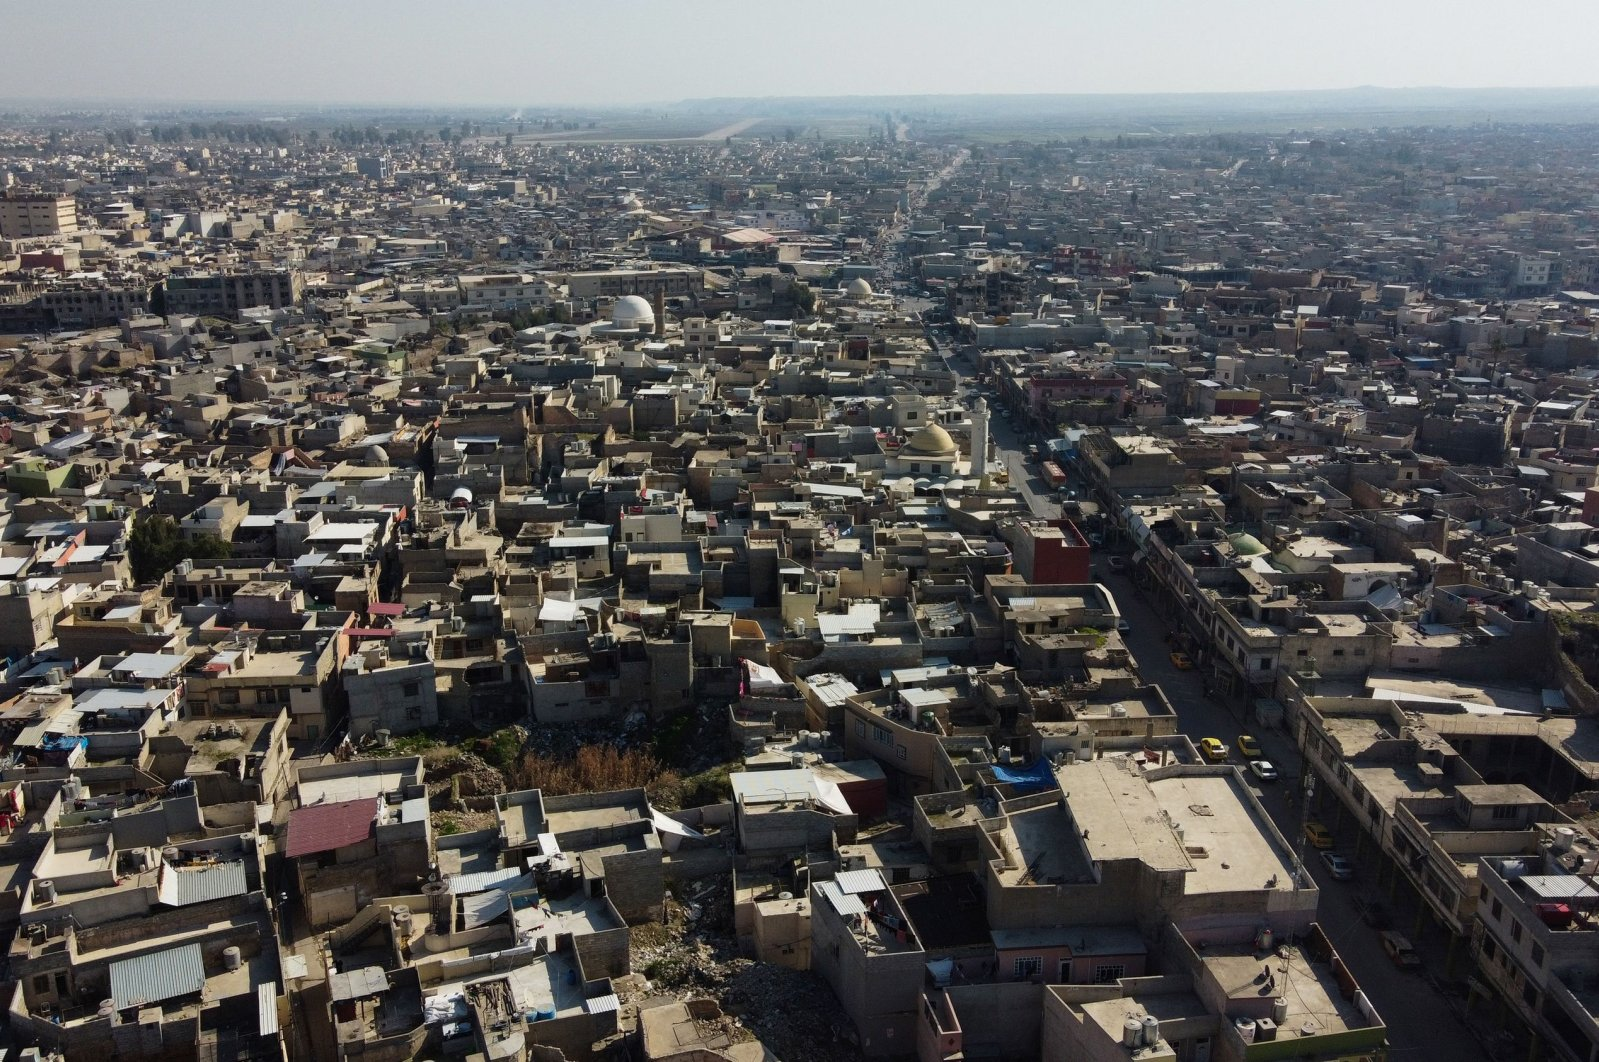 An aerial view shows Iraq's northern city of Mosul, the regional capital of the northern province of Nineveh, which was controlled by Daesh between 2014 and 2017 on Feb. 13, 2021. (AFP Photo)